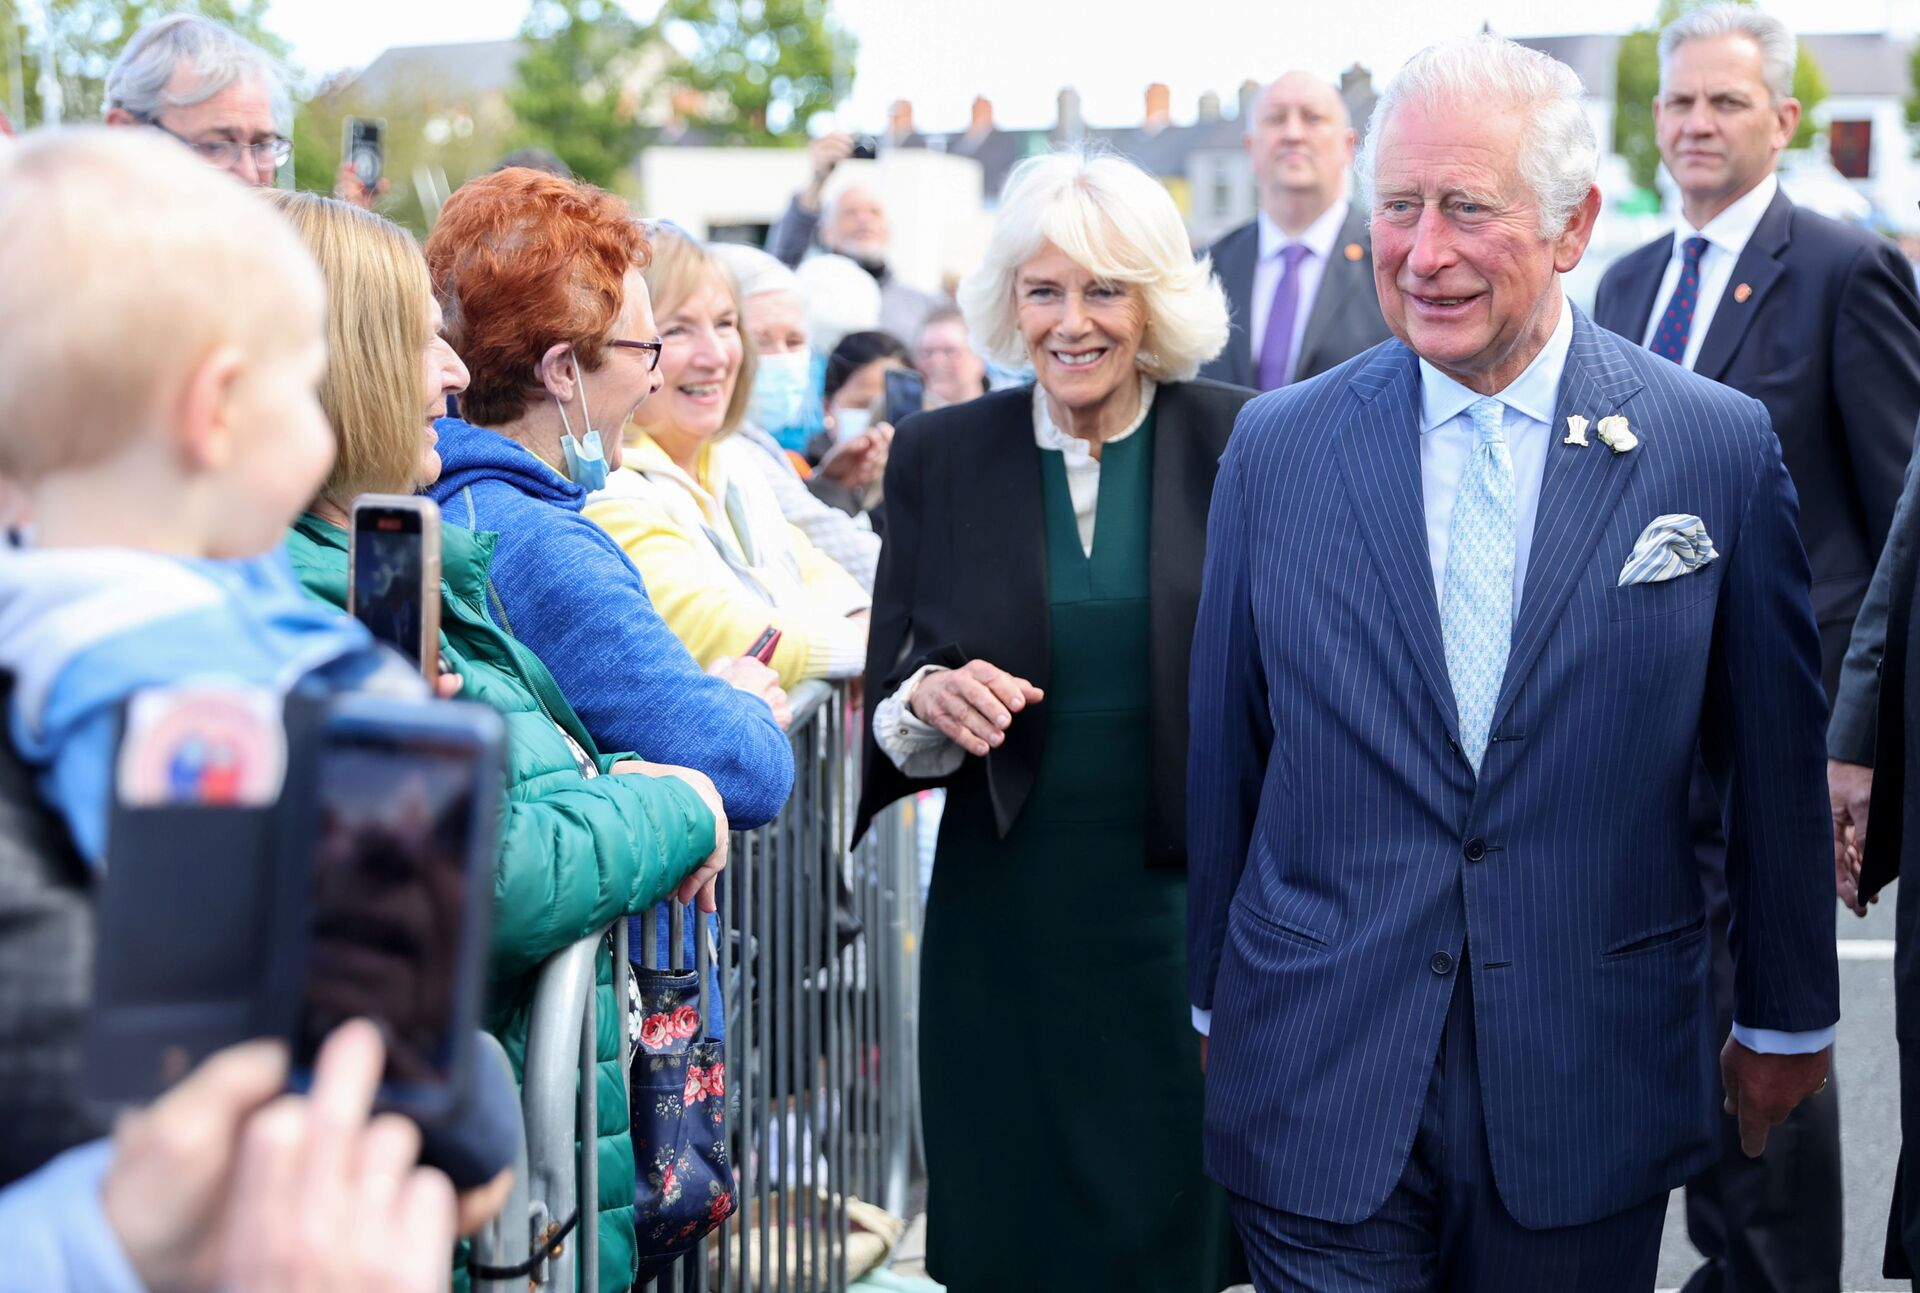 Britain's Prince Charles and Camilla, Duchess of Cornwall, meet well-wishers as they visit Bangor open air market, in Bangor, Northern Ireland, Britain May 19, 2021 - Sputnik International, 1920, 07.09.2021